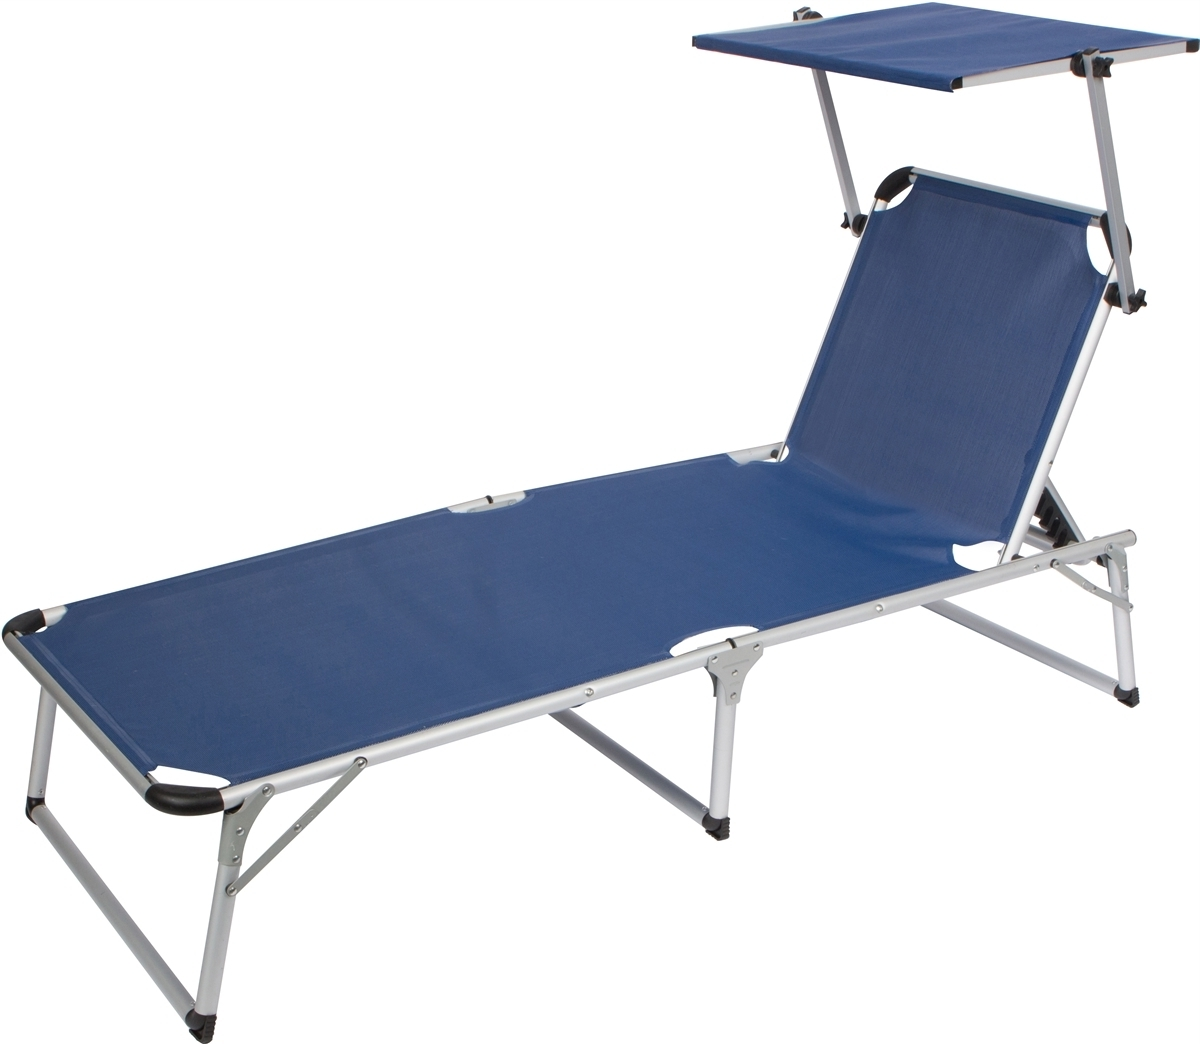 Adjustable Beach Chairs – Sadgururocks In Recent Chaise Lounge Chair With Canopy (View 1 of 15)